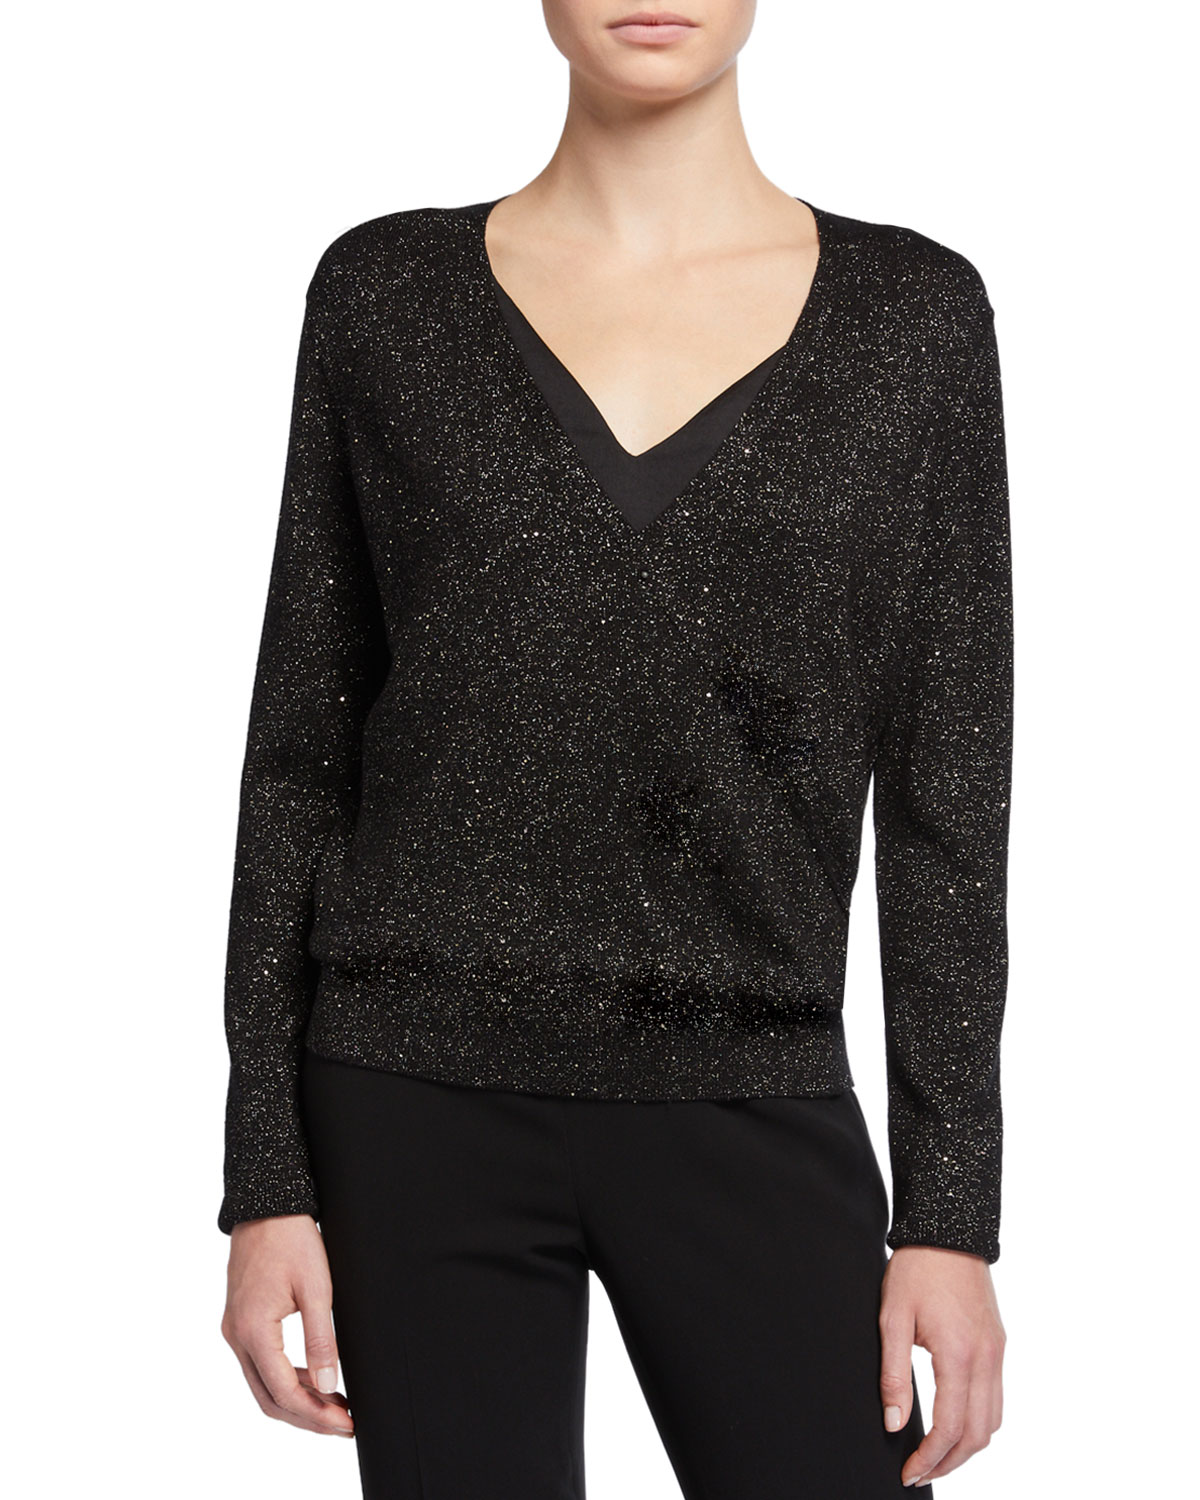 Sequin Metallic V Neck Sweater by Lafayette 148 New York